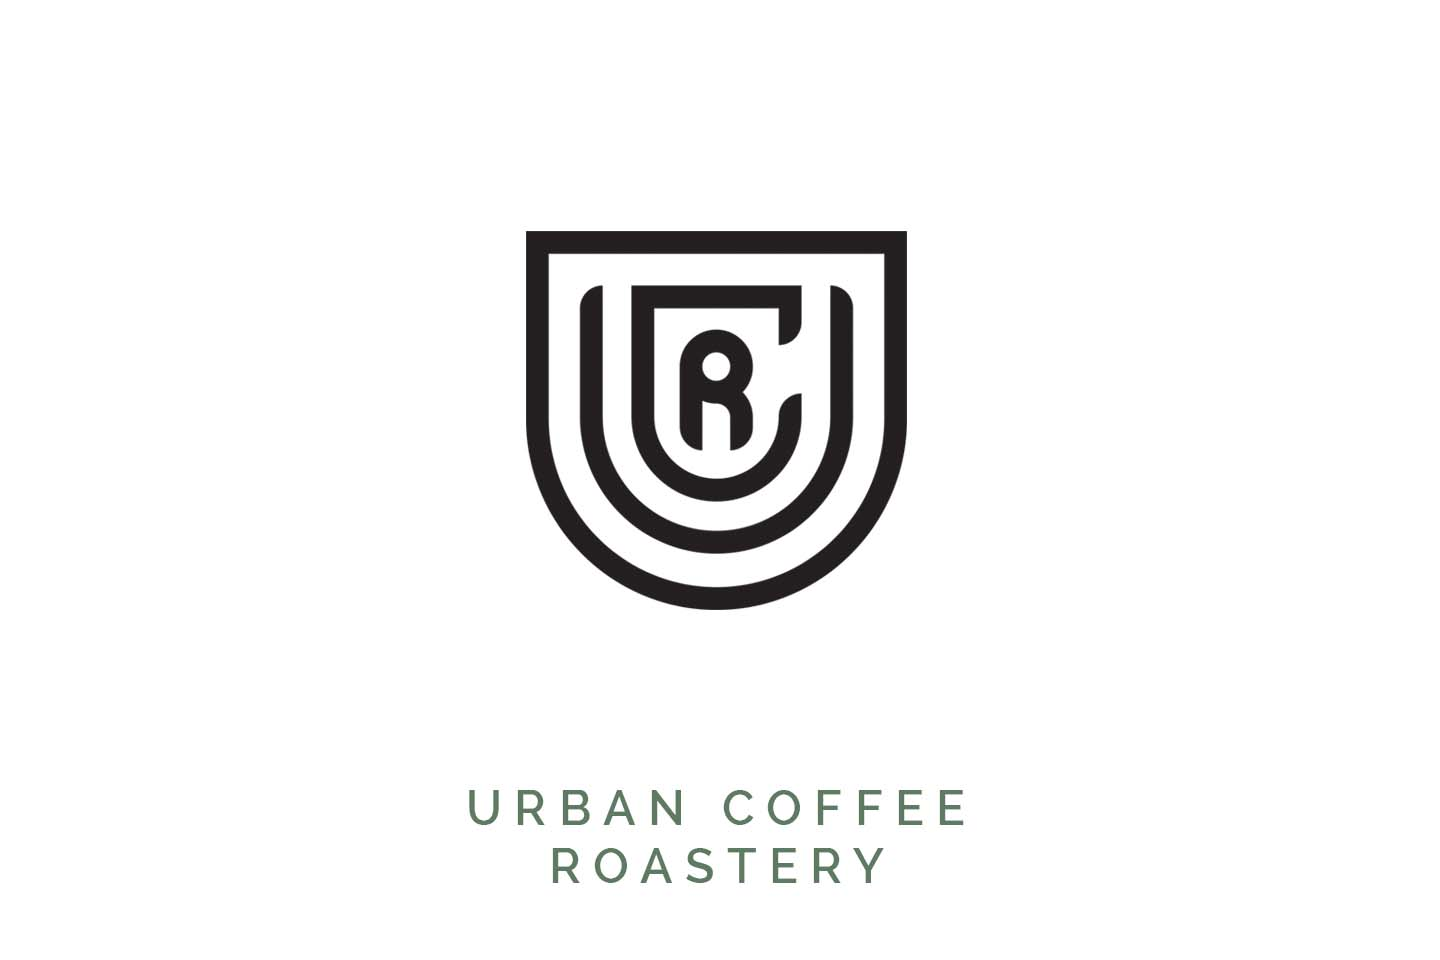 Urban Coffee Roaster